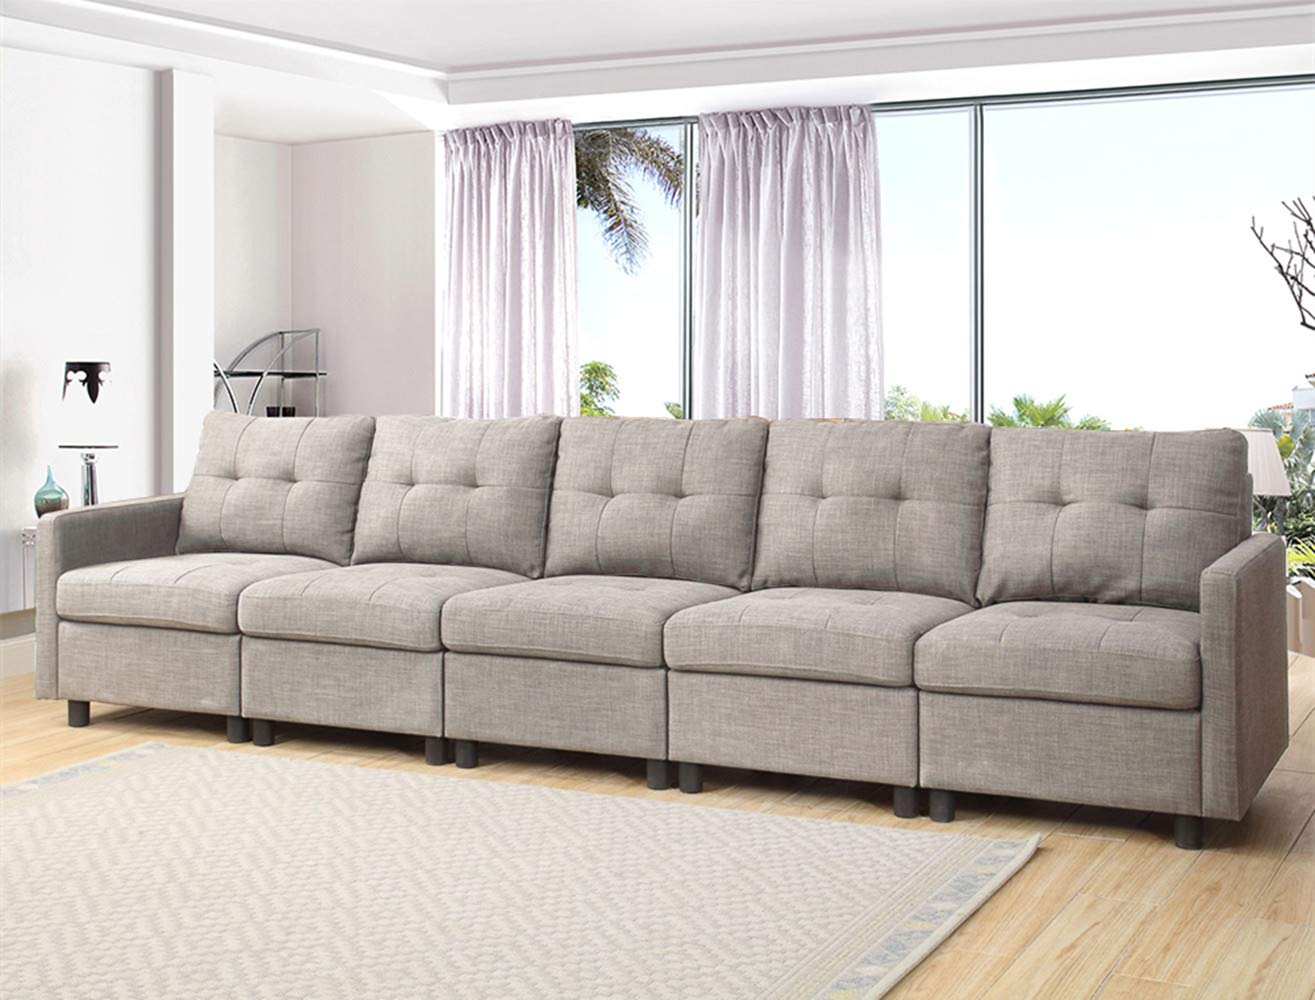 OuchTek 5 Pieces Grey Modern Modular Sectional Sofas